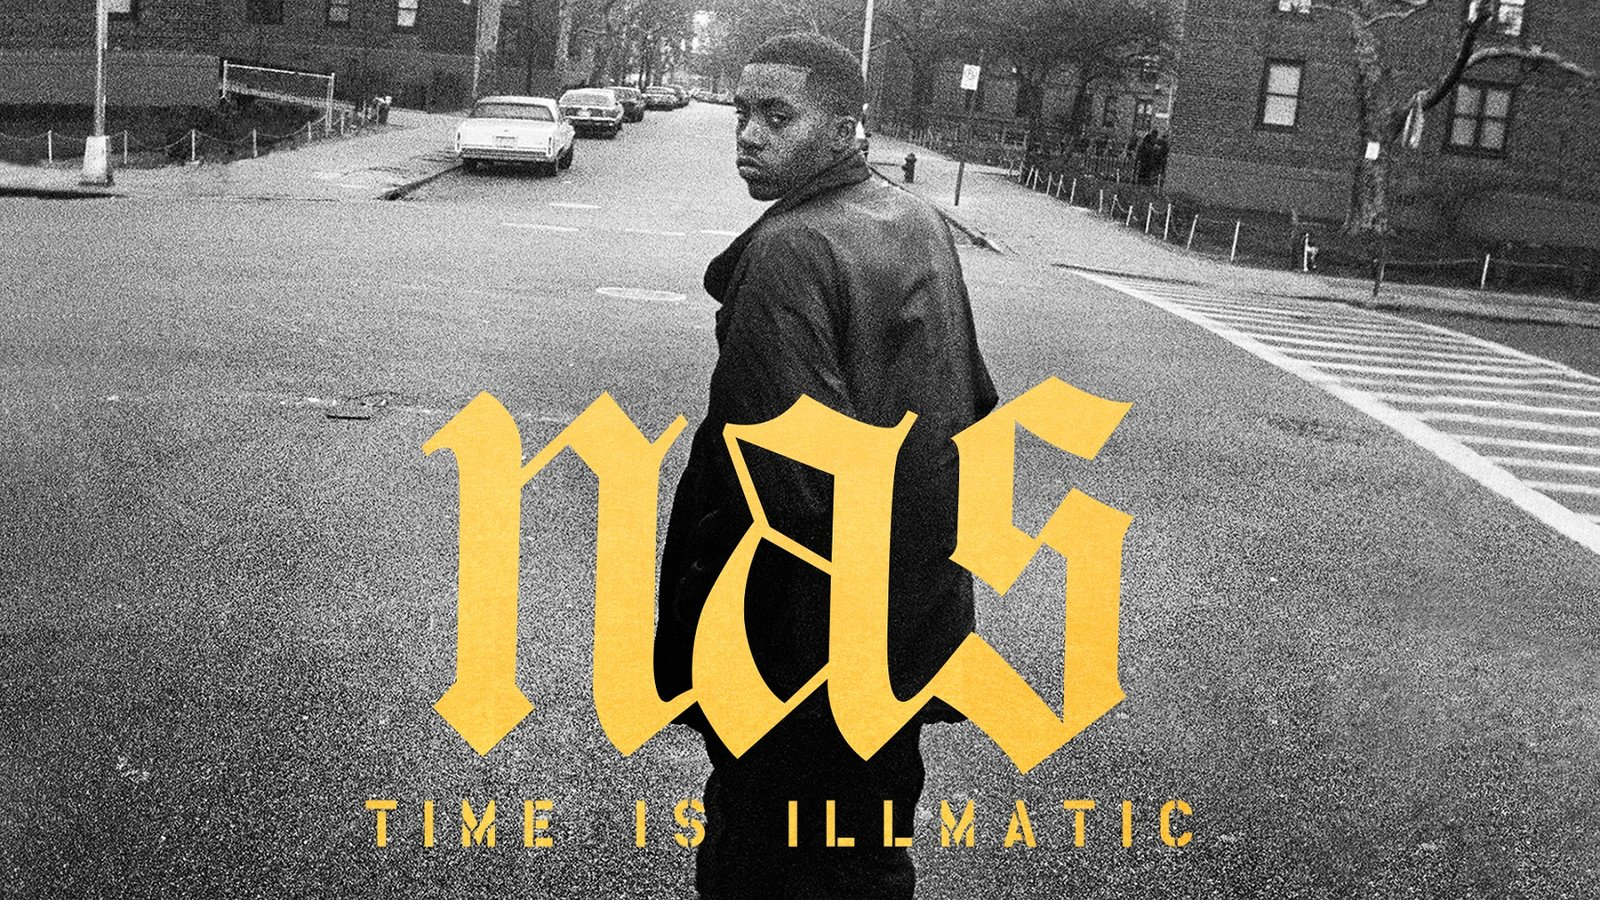 Nas: Time Is Illmatic - The Making of a Groundbreaking Hip Hop Album